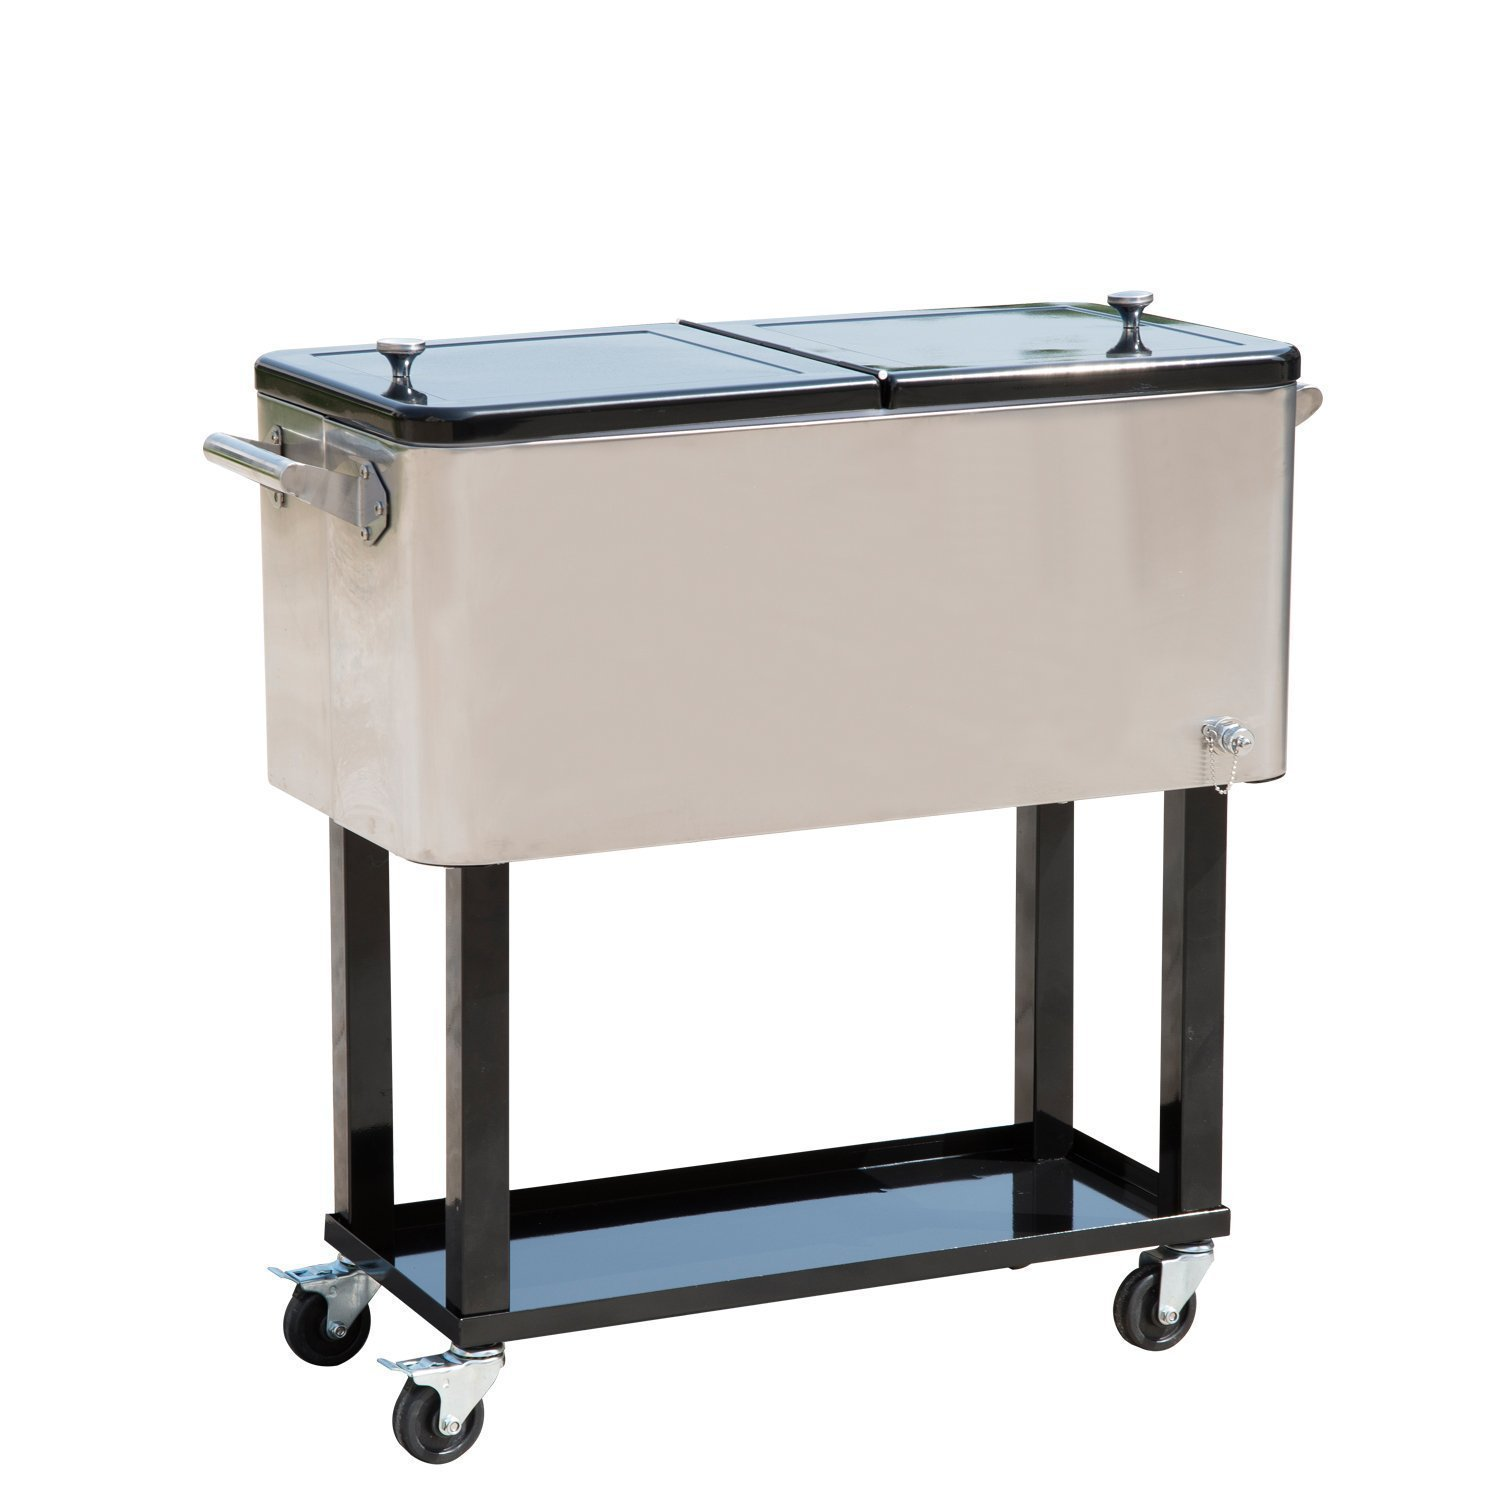 Amazon.com : Tenive 80 Quart Stainless Patio Cooler Portable Ice Cooler  Cart Rolling Party Drink Entertaining Outdoor Cooler Cart   Silver : Patio,  ...